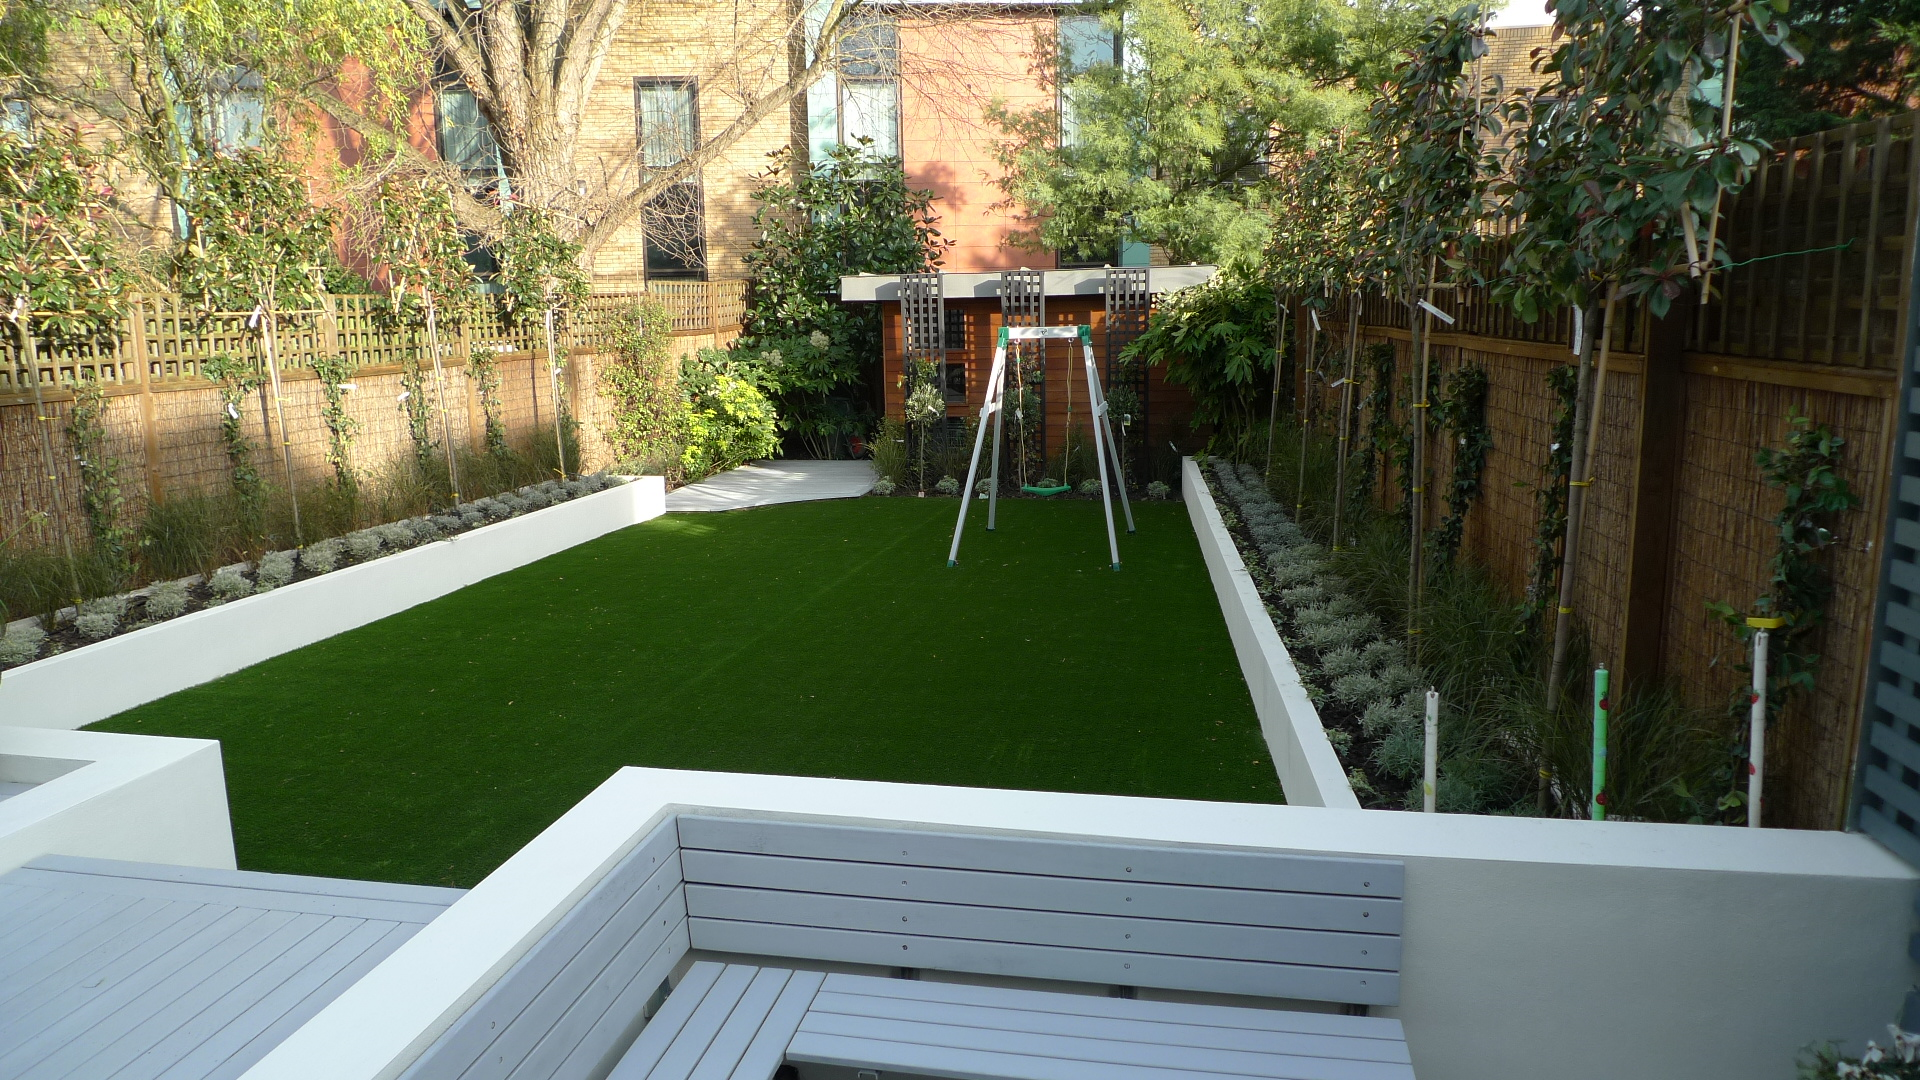 Modern garden design ideas london london garden design for Back garden designs uk